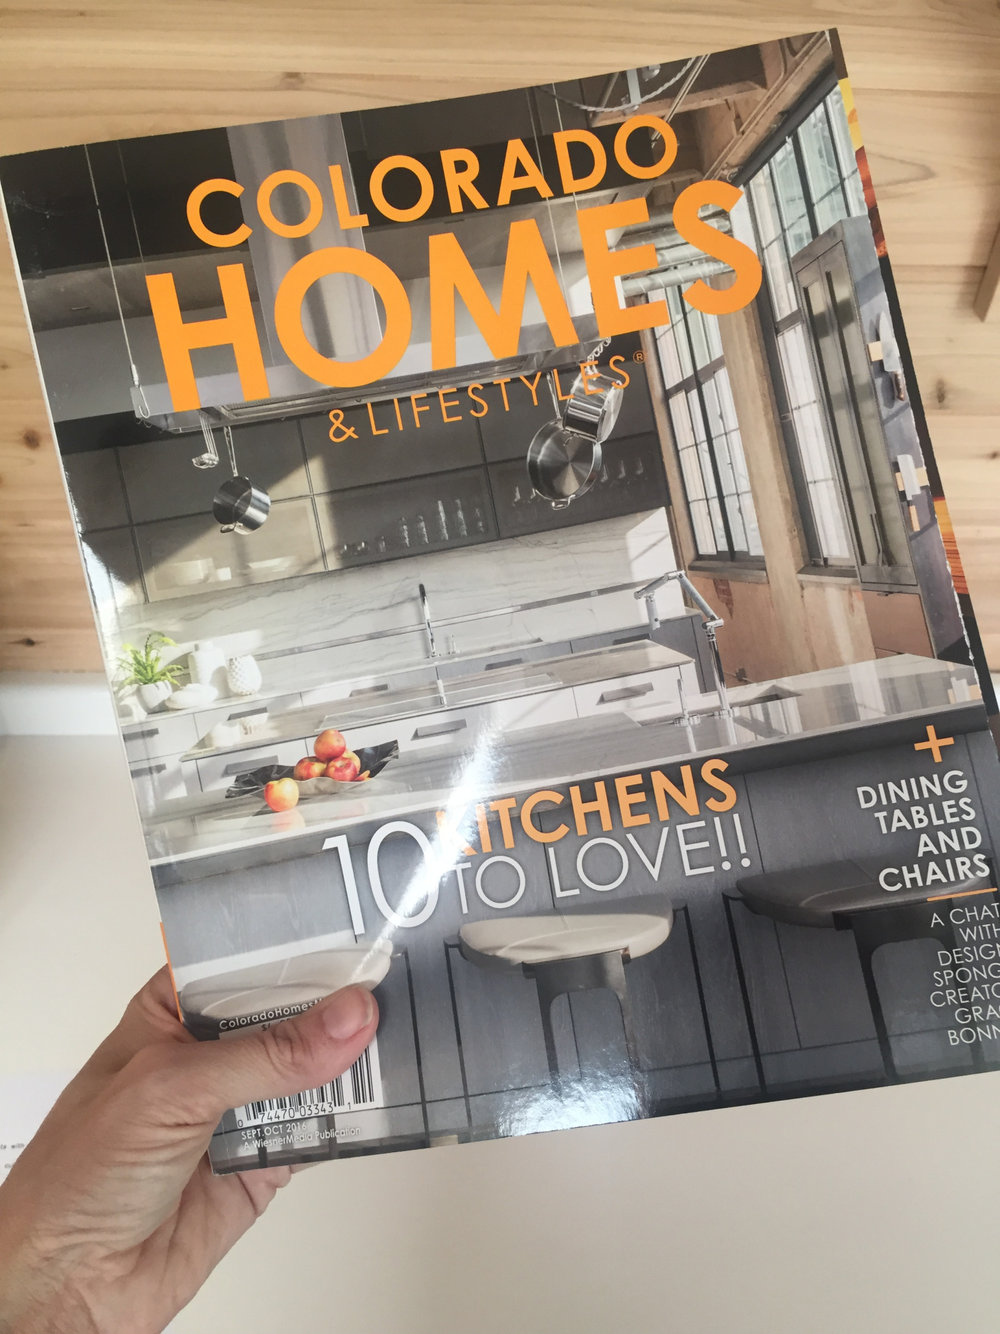 Colorado Homes & Lifestyles, Fall 2016 -